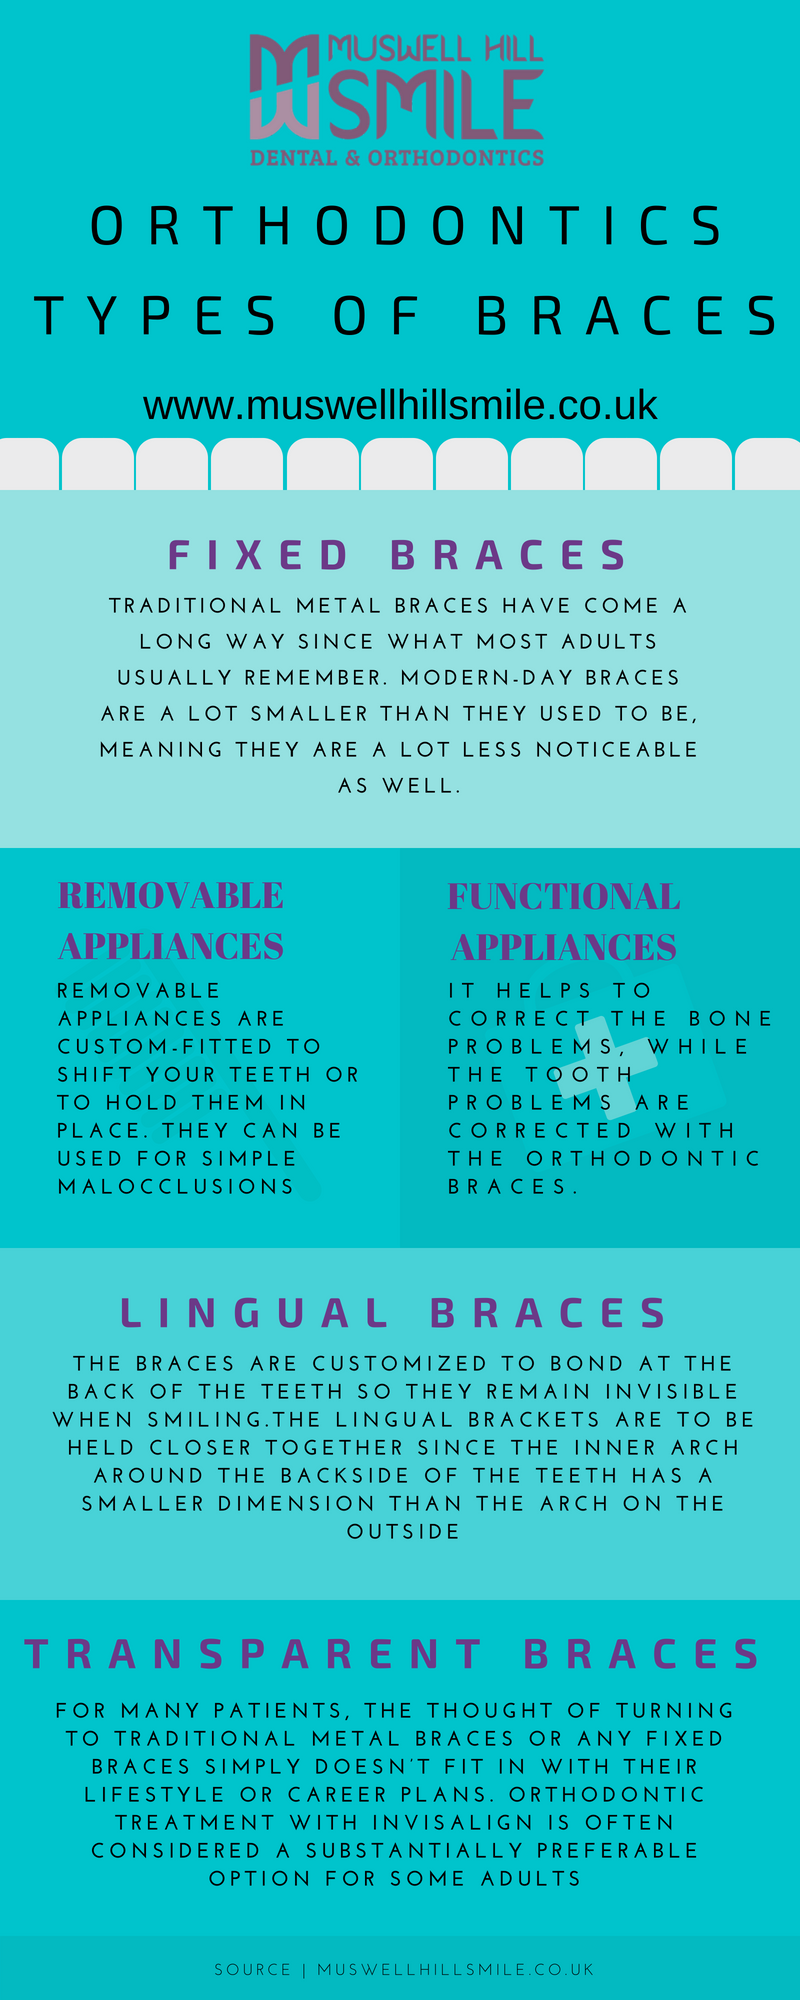 5 Types of Braces – Muswell Hill Smile